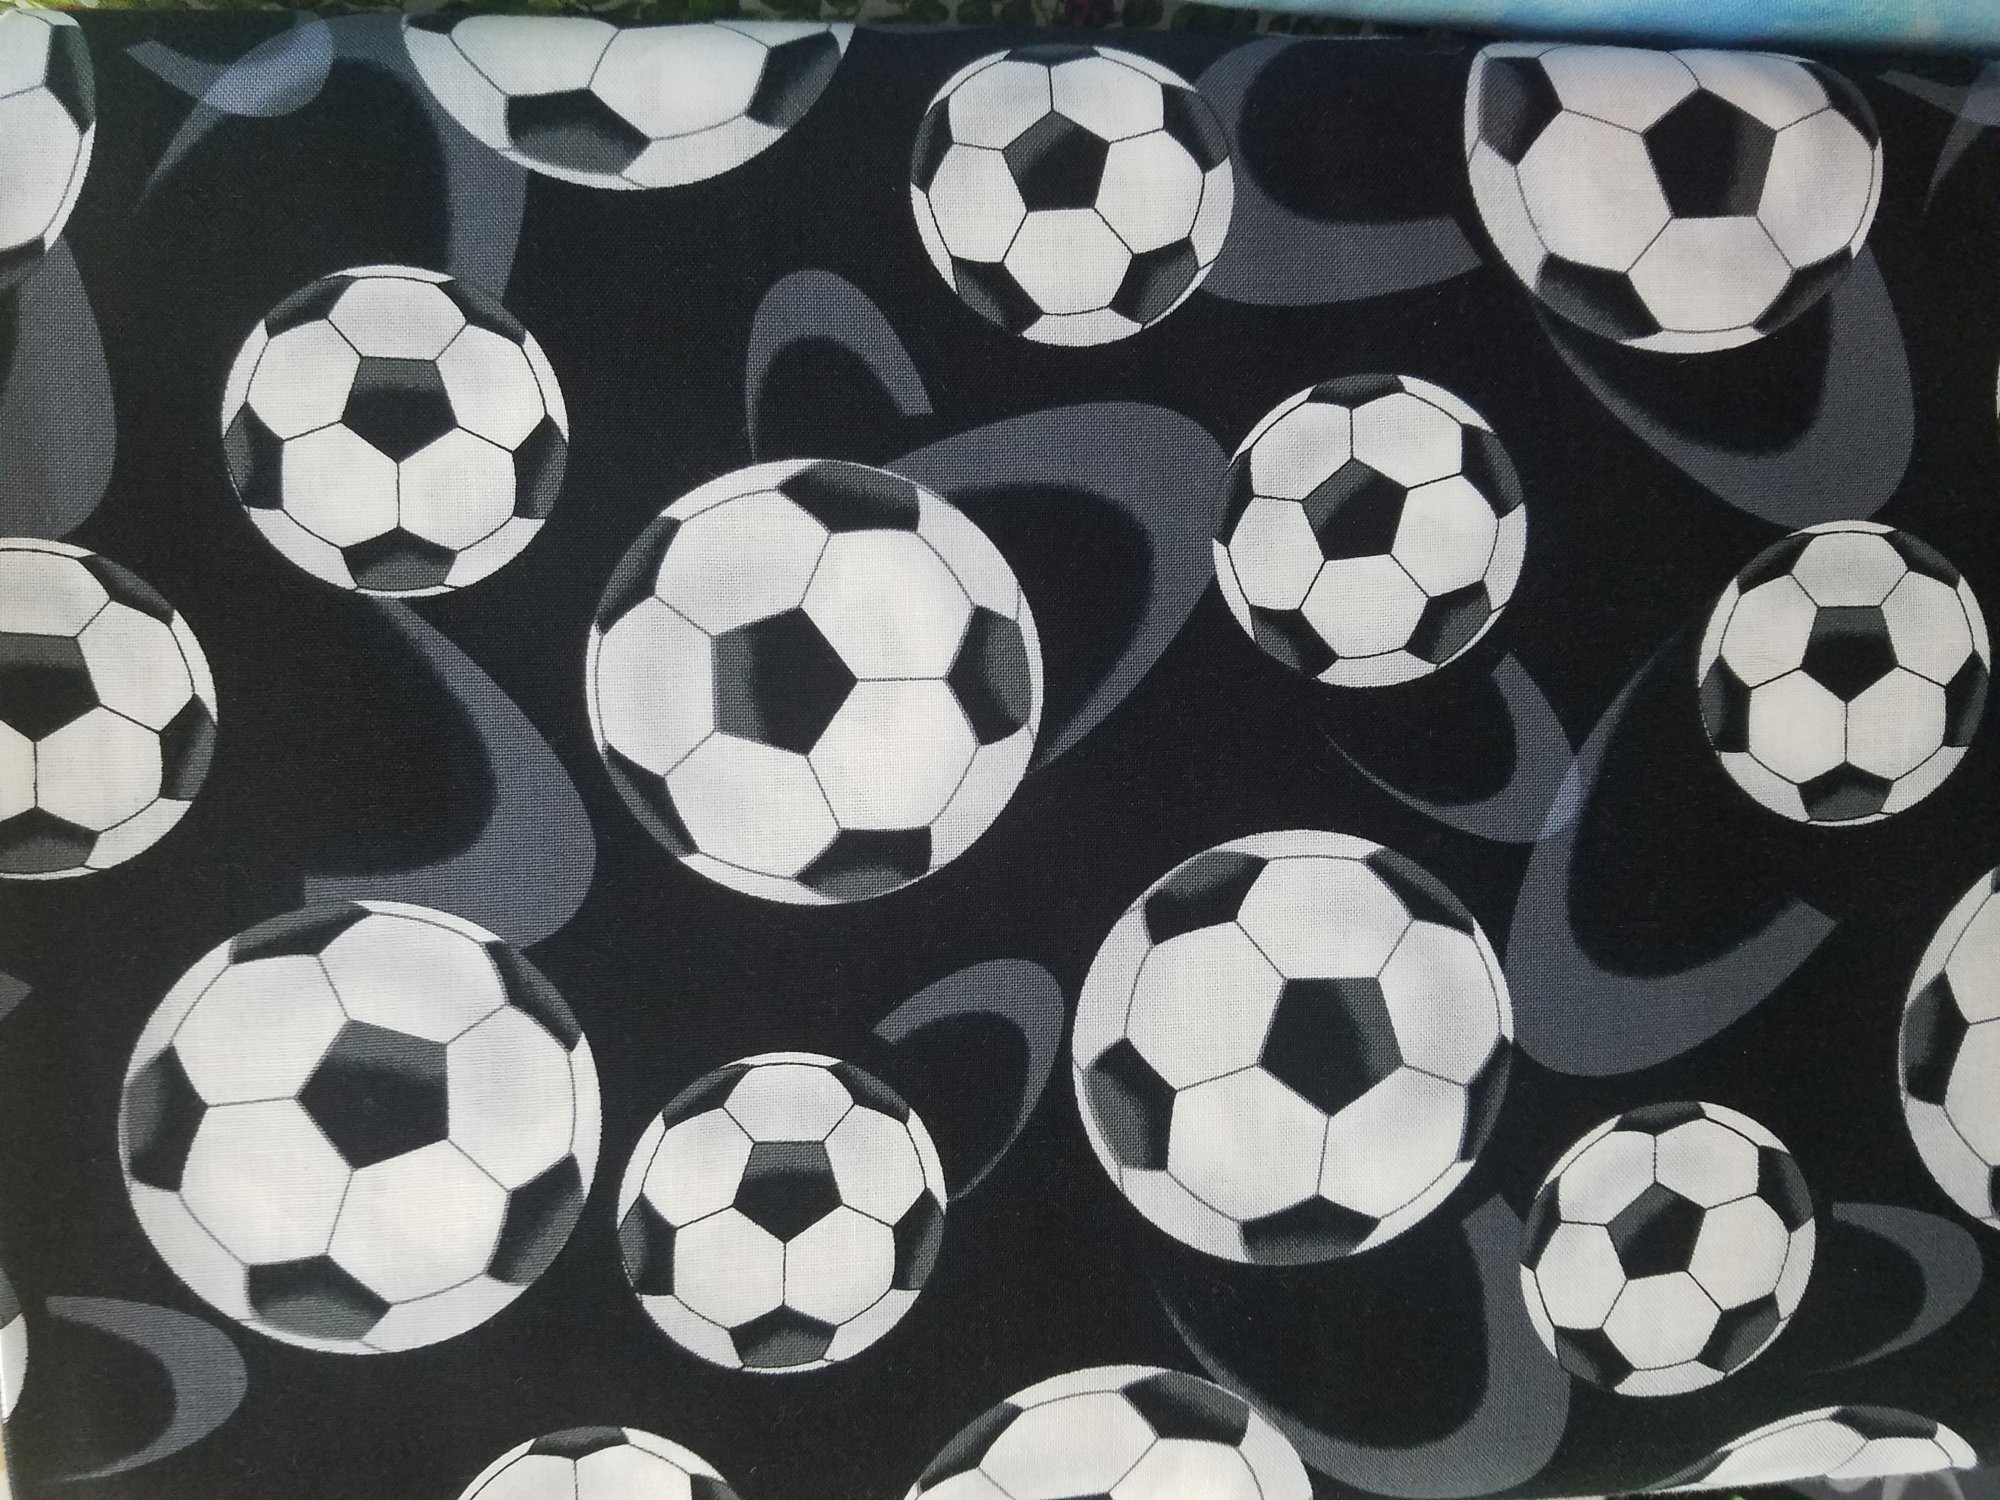 Black Large Tossed Soccer Balls